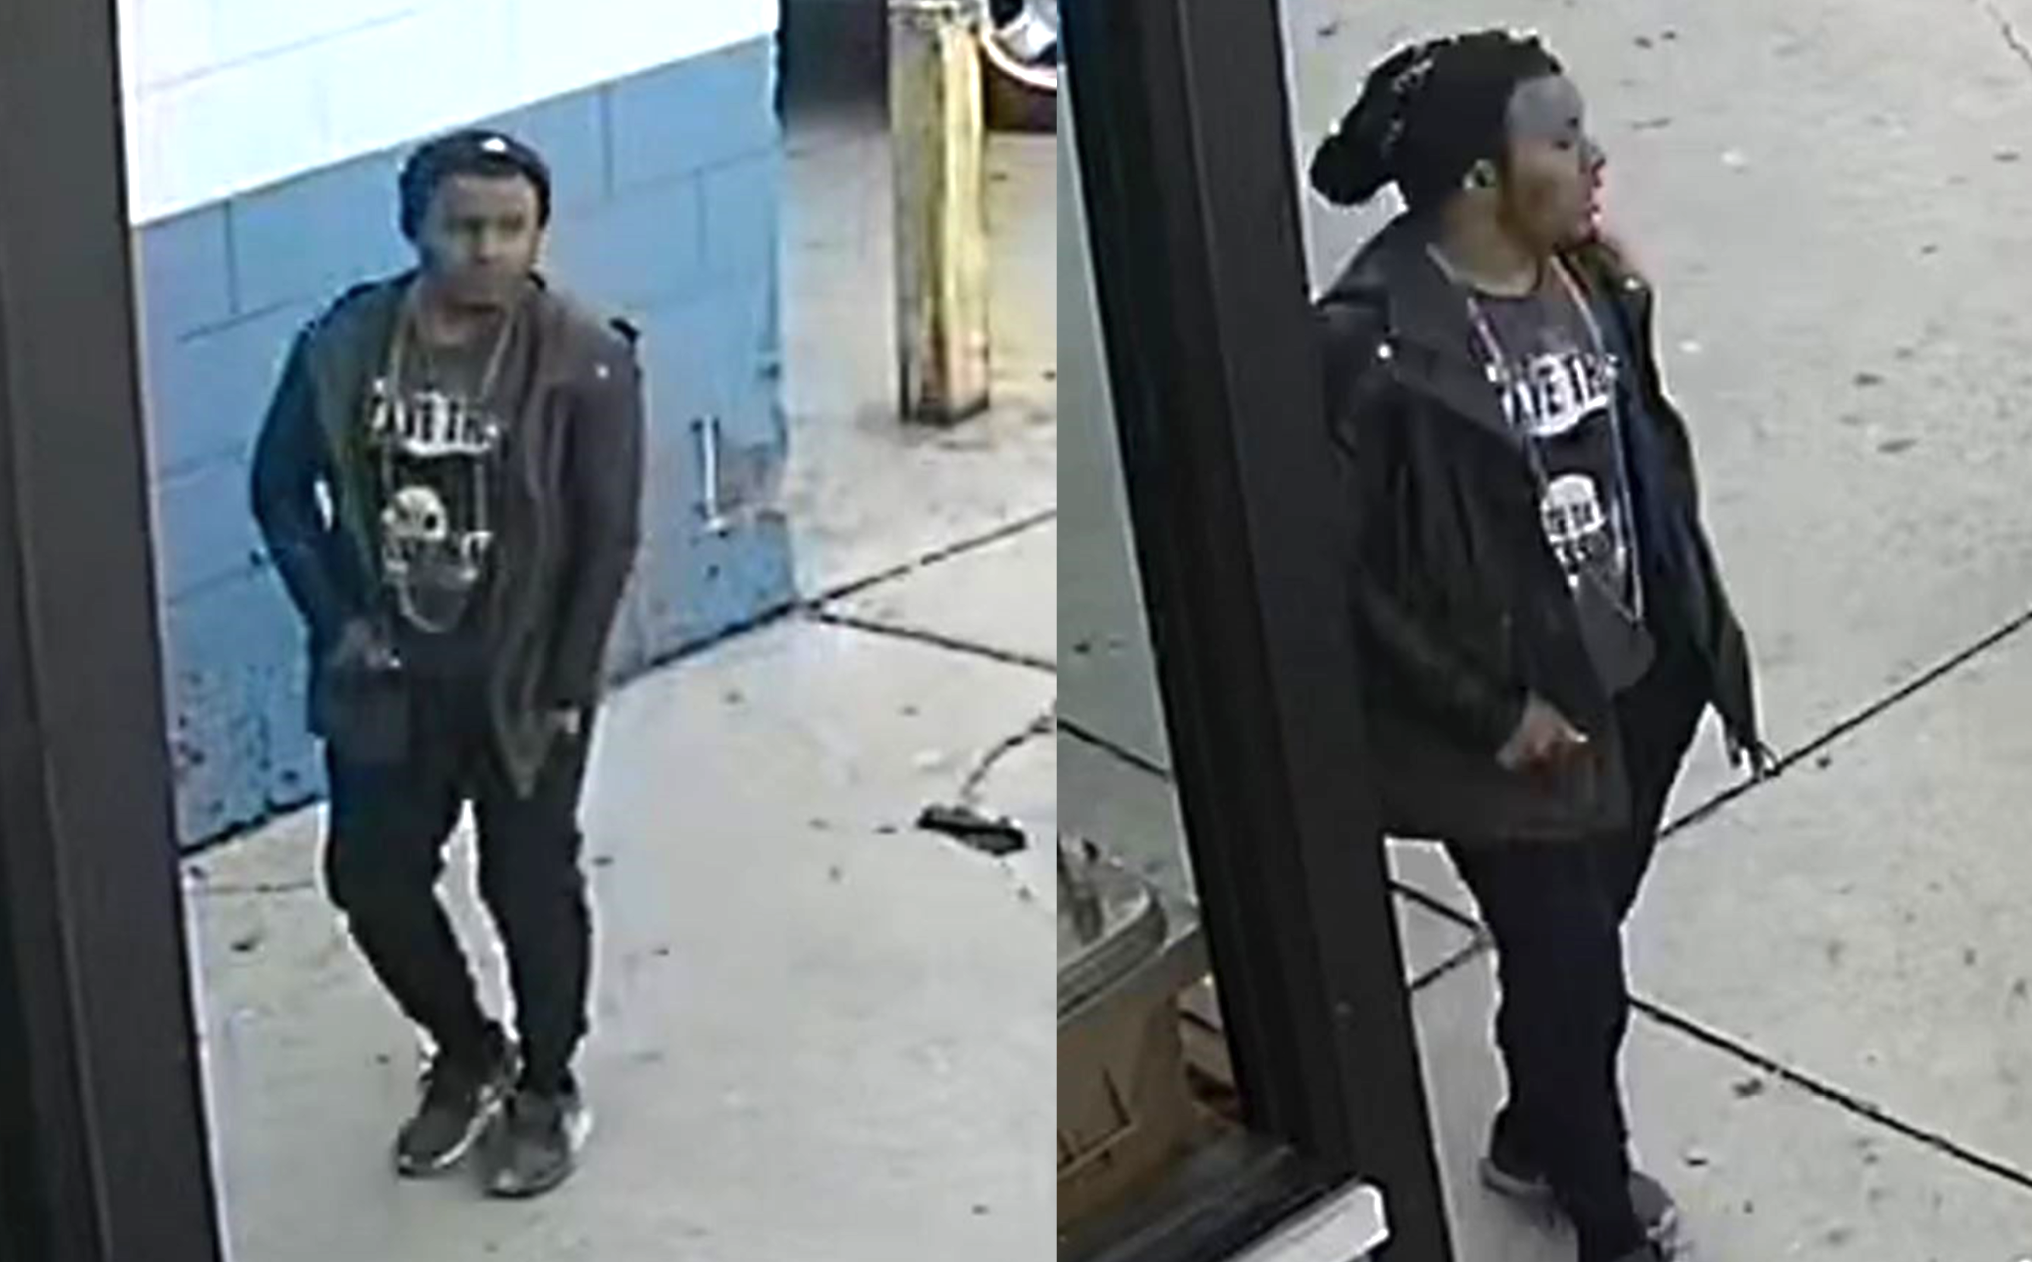 Images released by Chicago police of a man wanted for allegedly exposing himself April 5, 2020, in the 4200 block of West North Avenue.